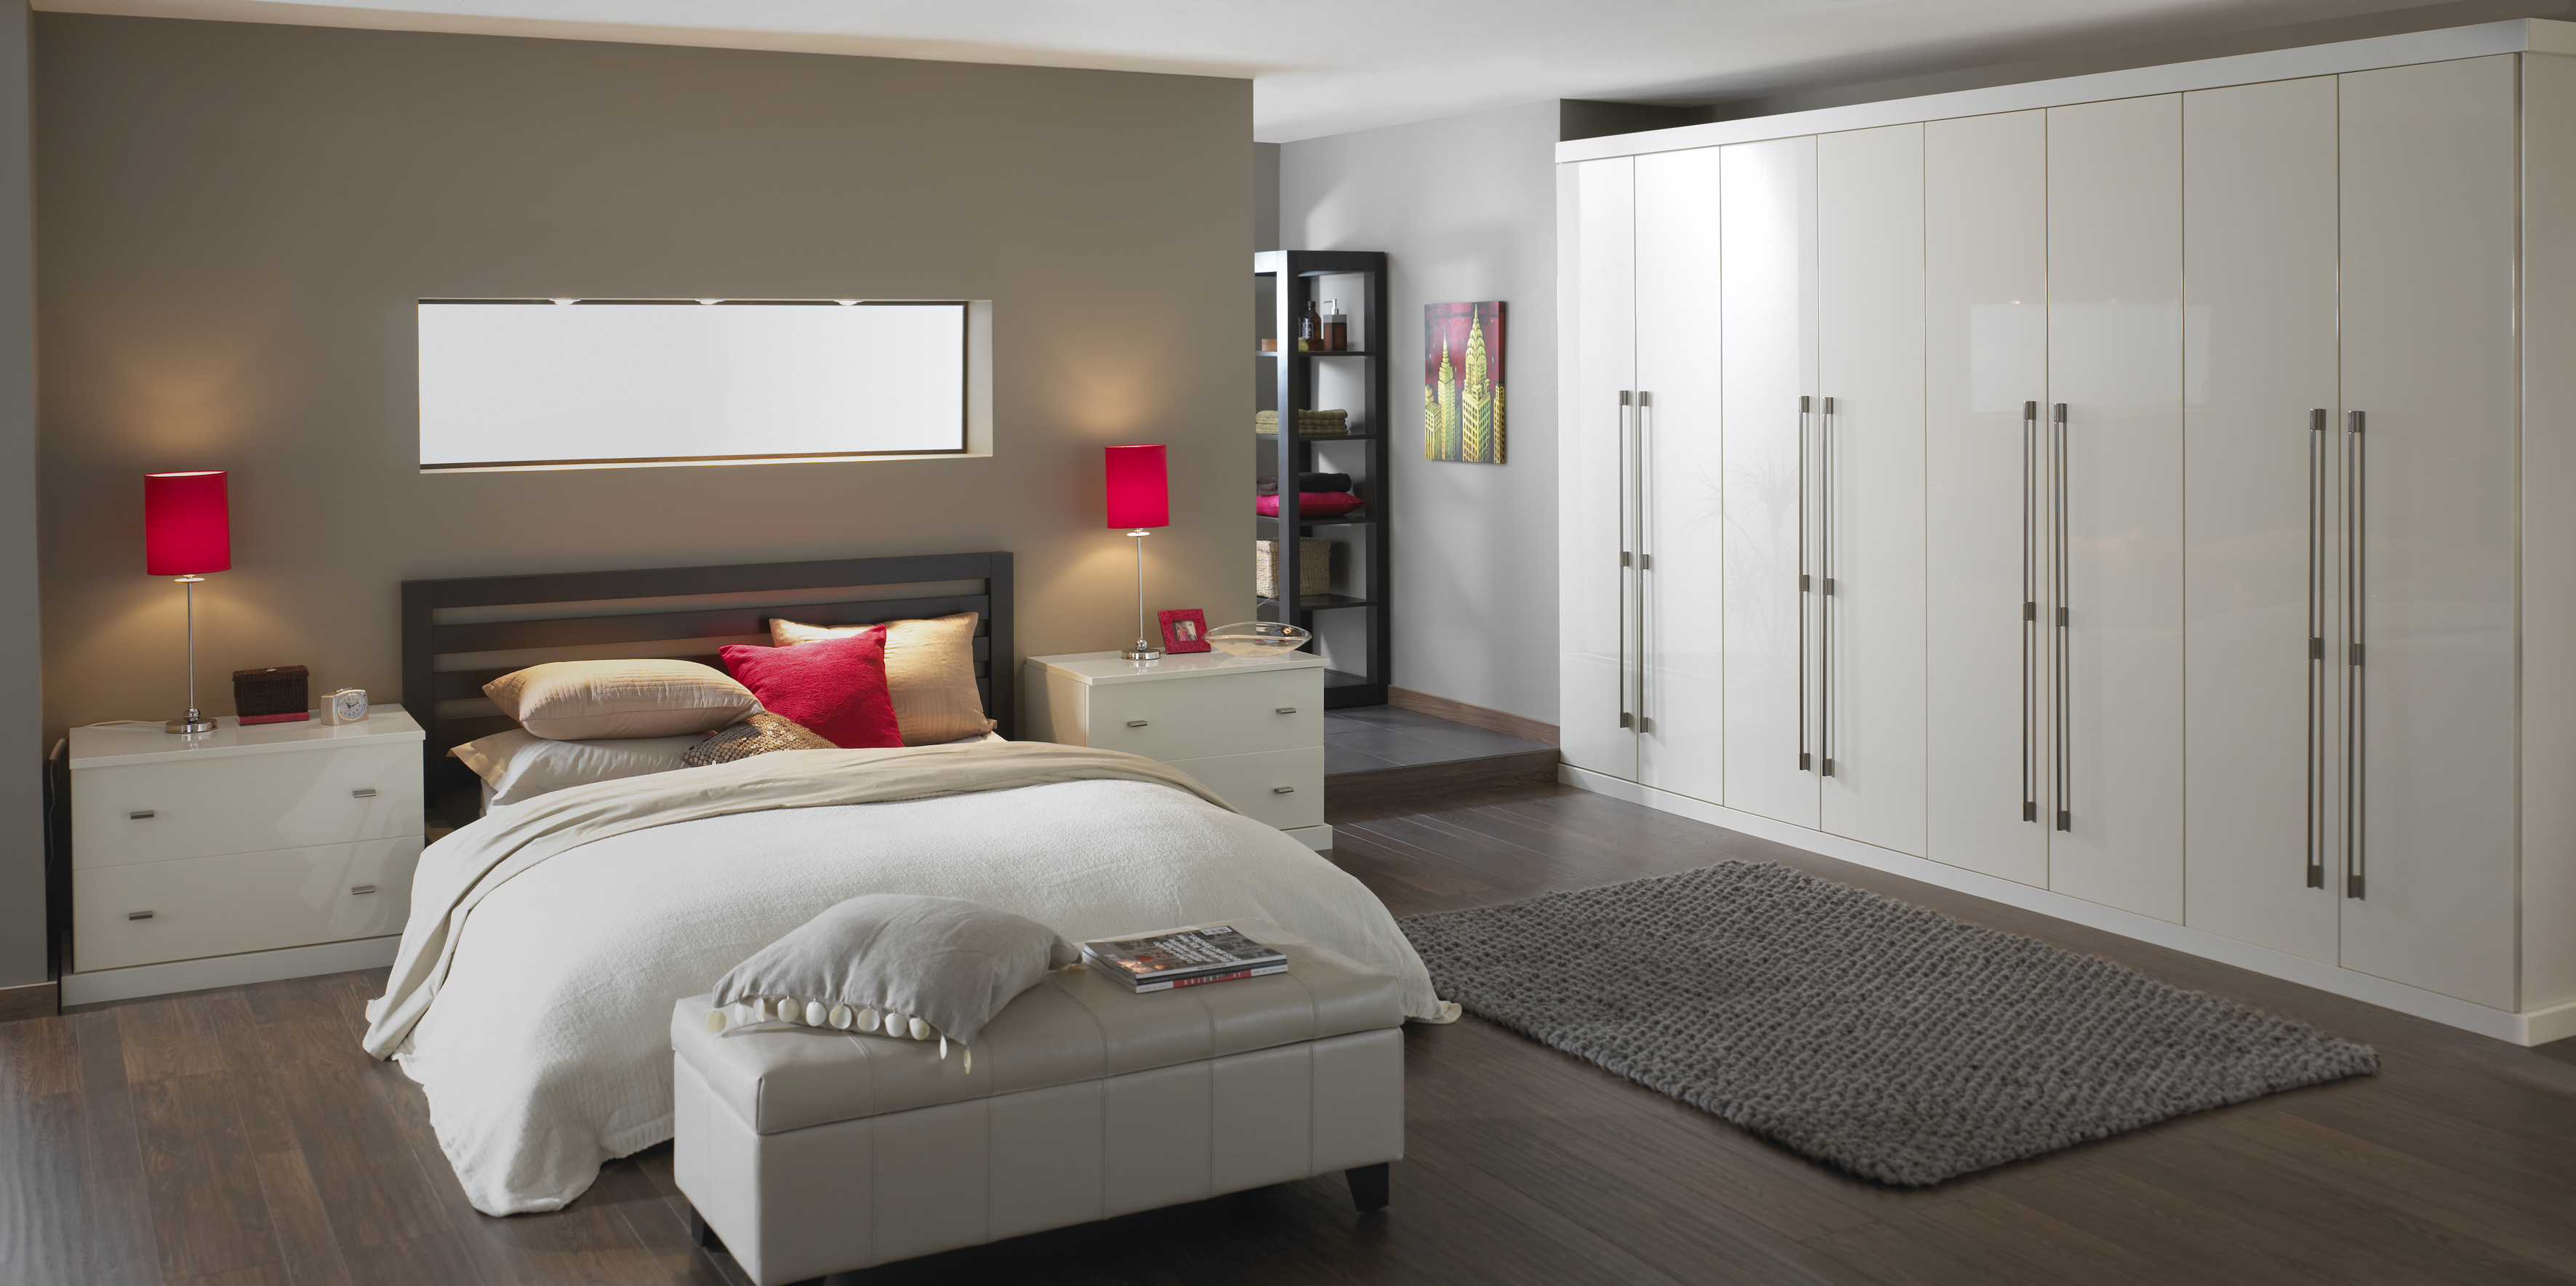 cupboard an staggering essex wardrobes built design ideas verve new cupboards bespoke home bedroom fitted